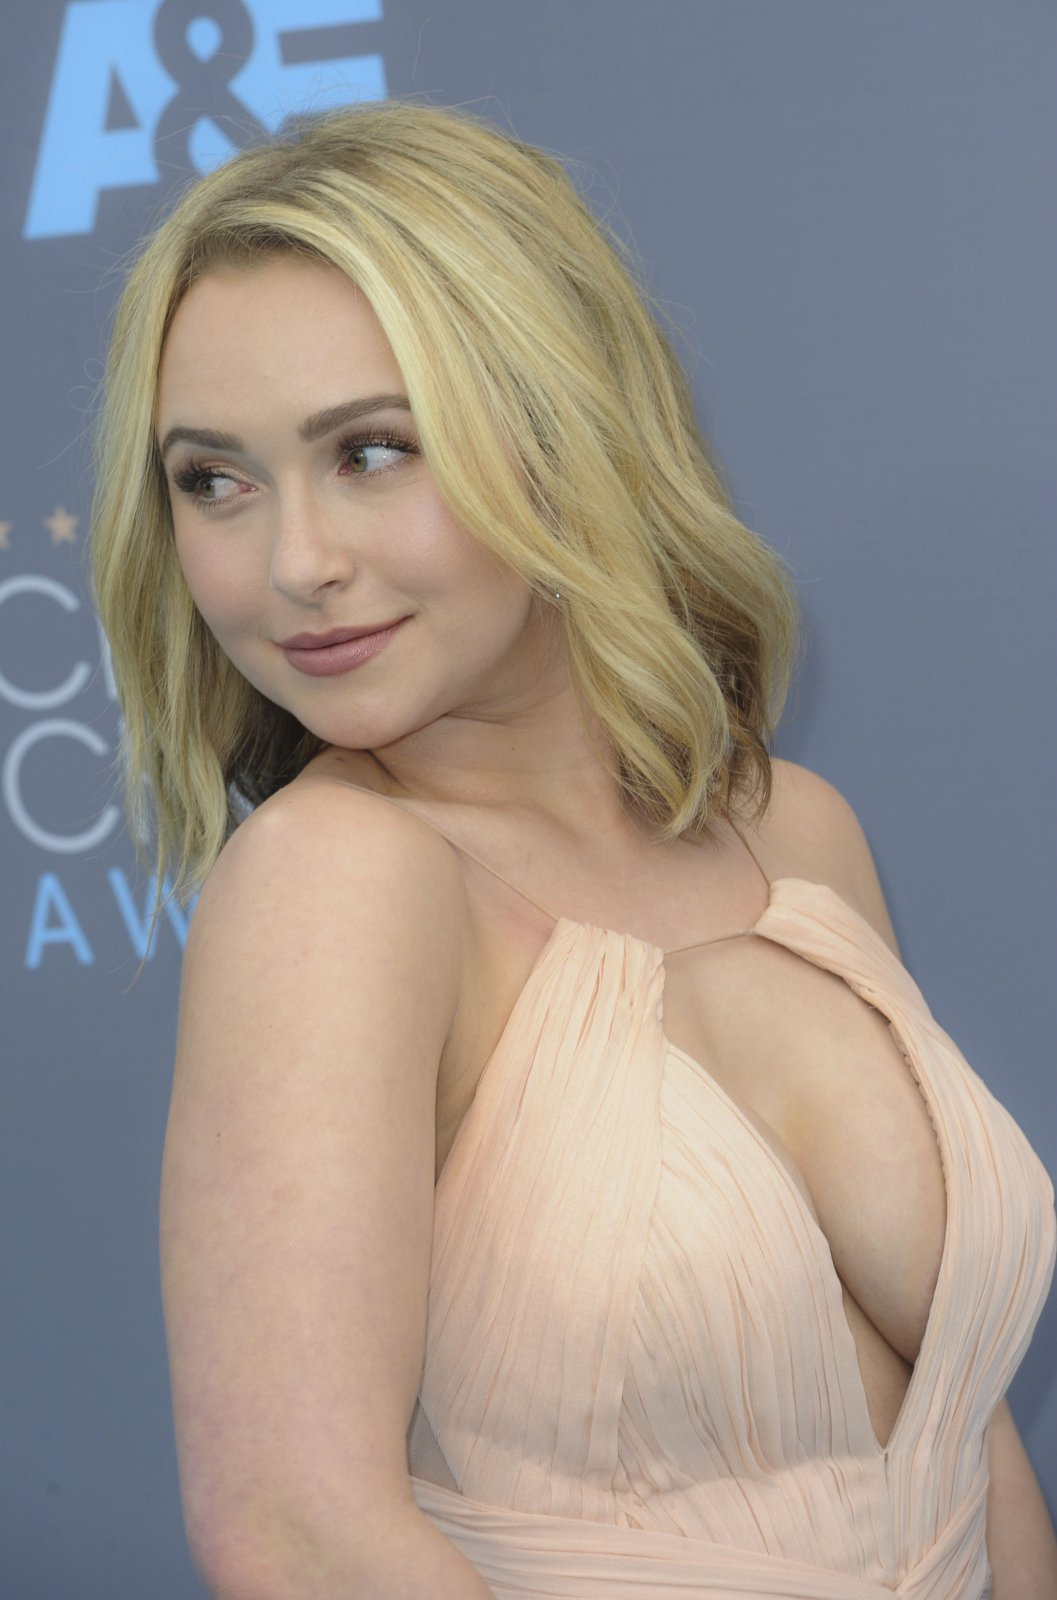 Hayden panettiere nude ass naked